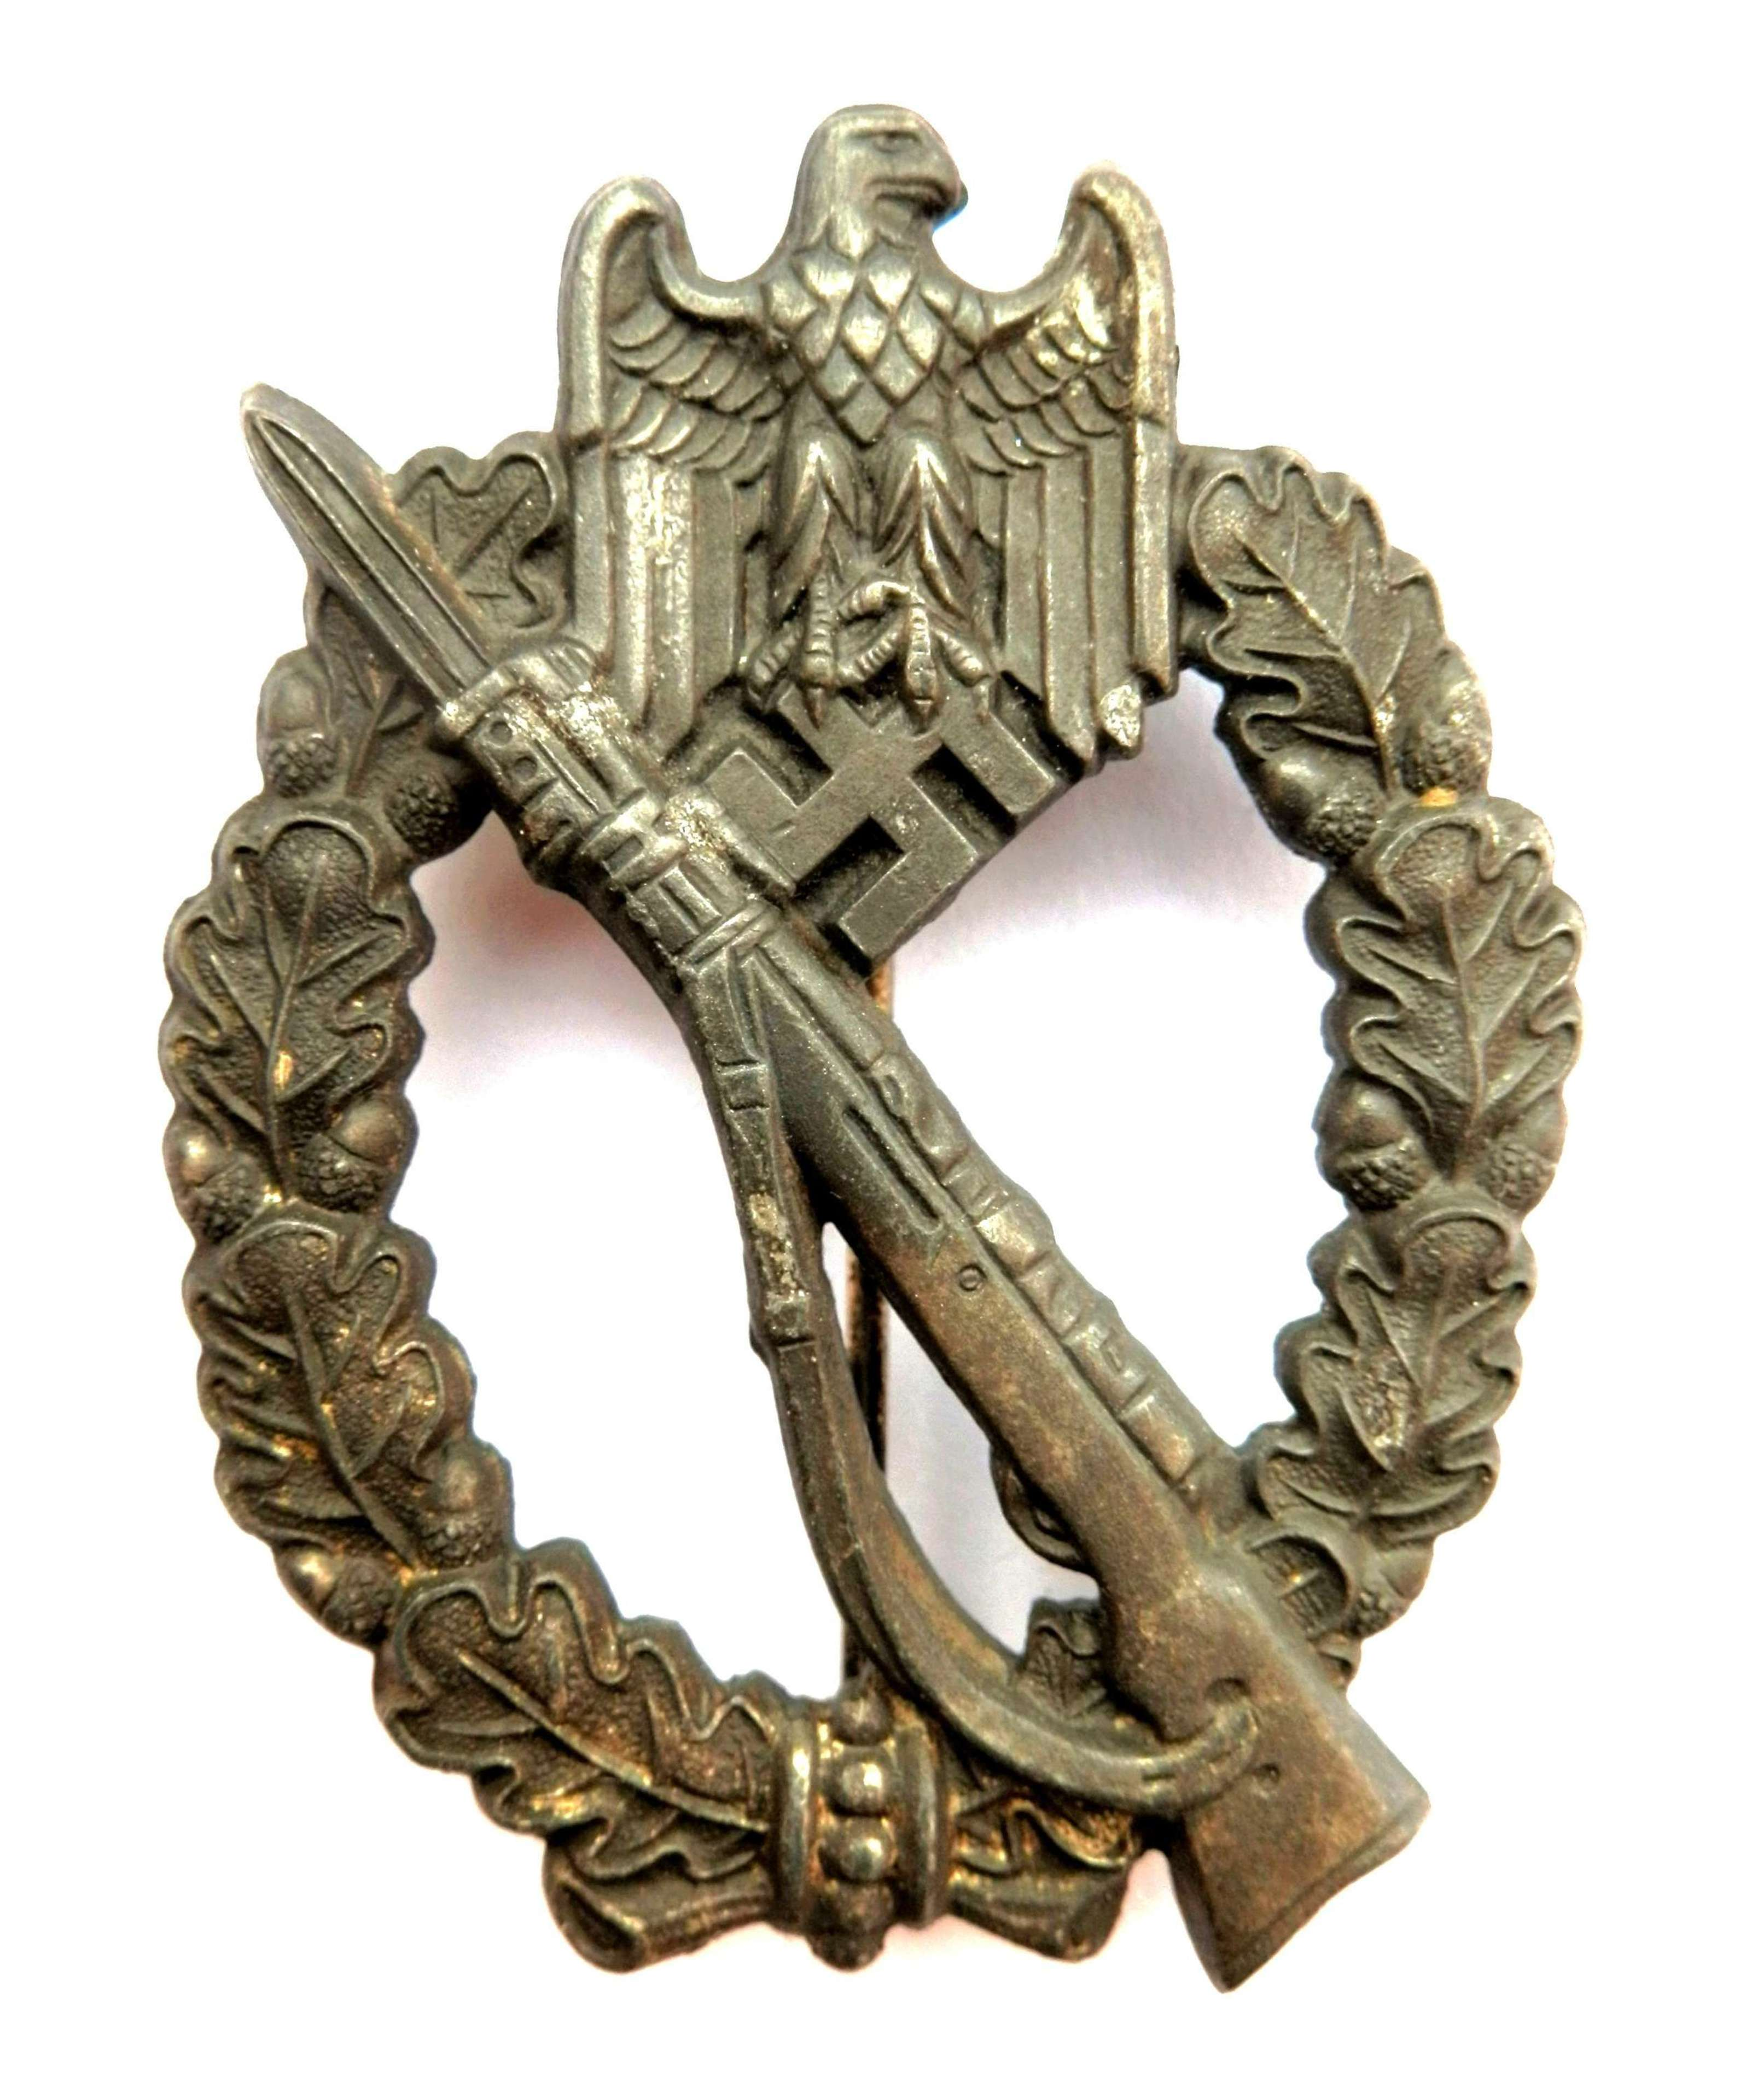 German Infantry Assault Badge. By 'R.S.', Rudolf Souval.